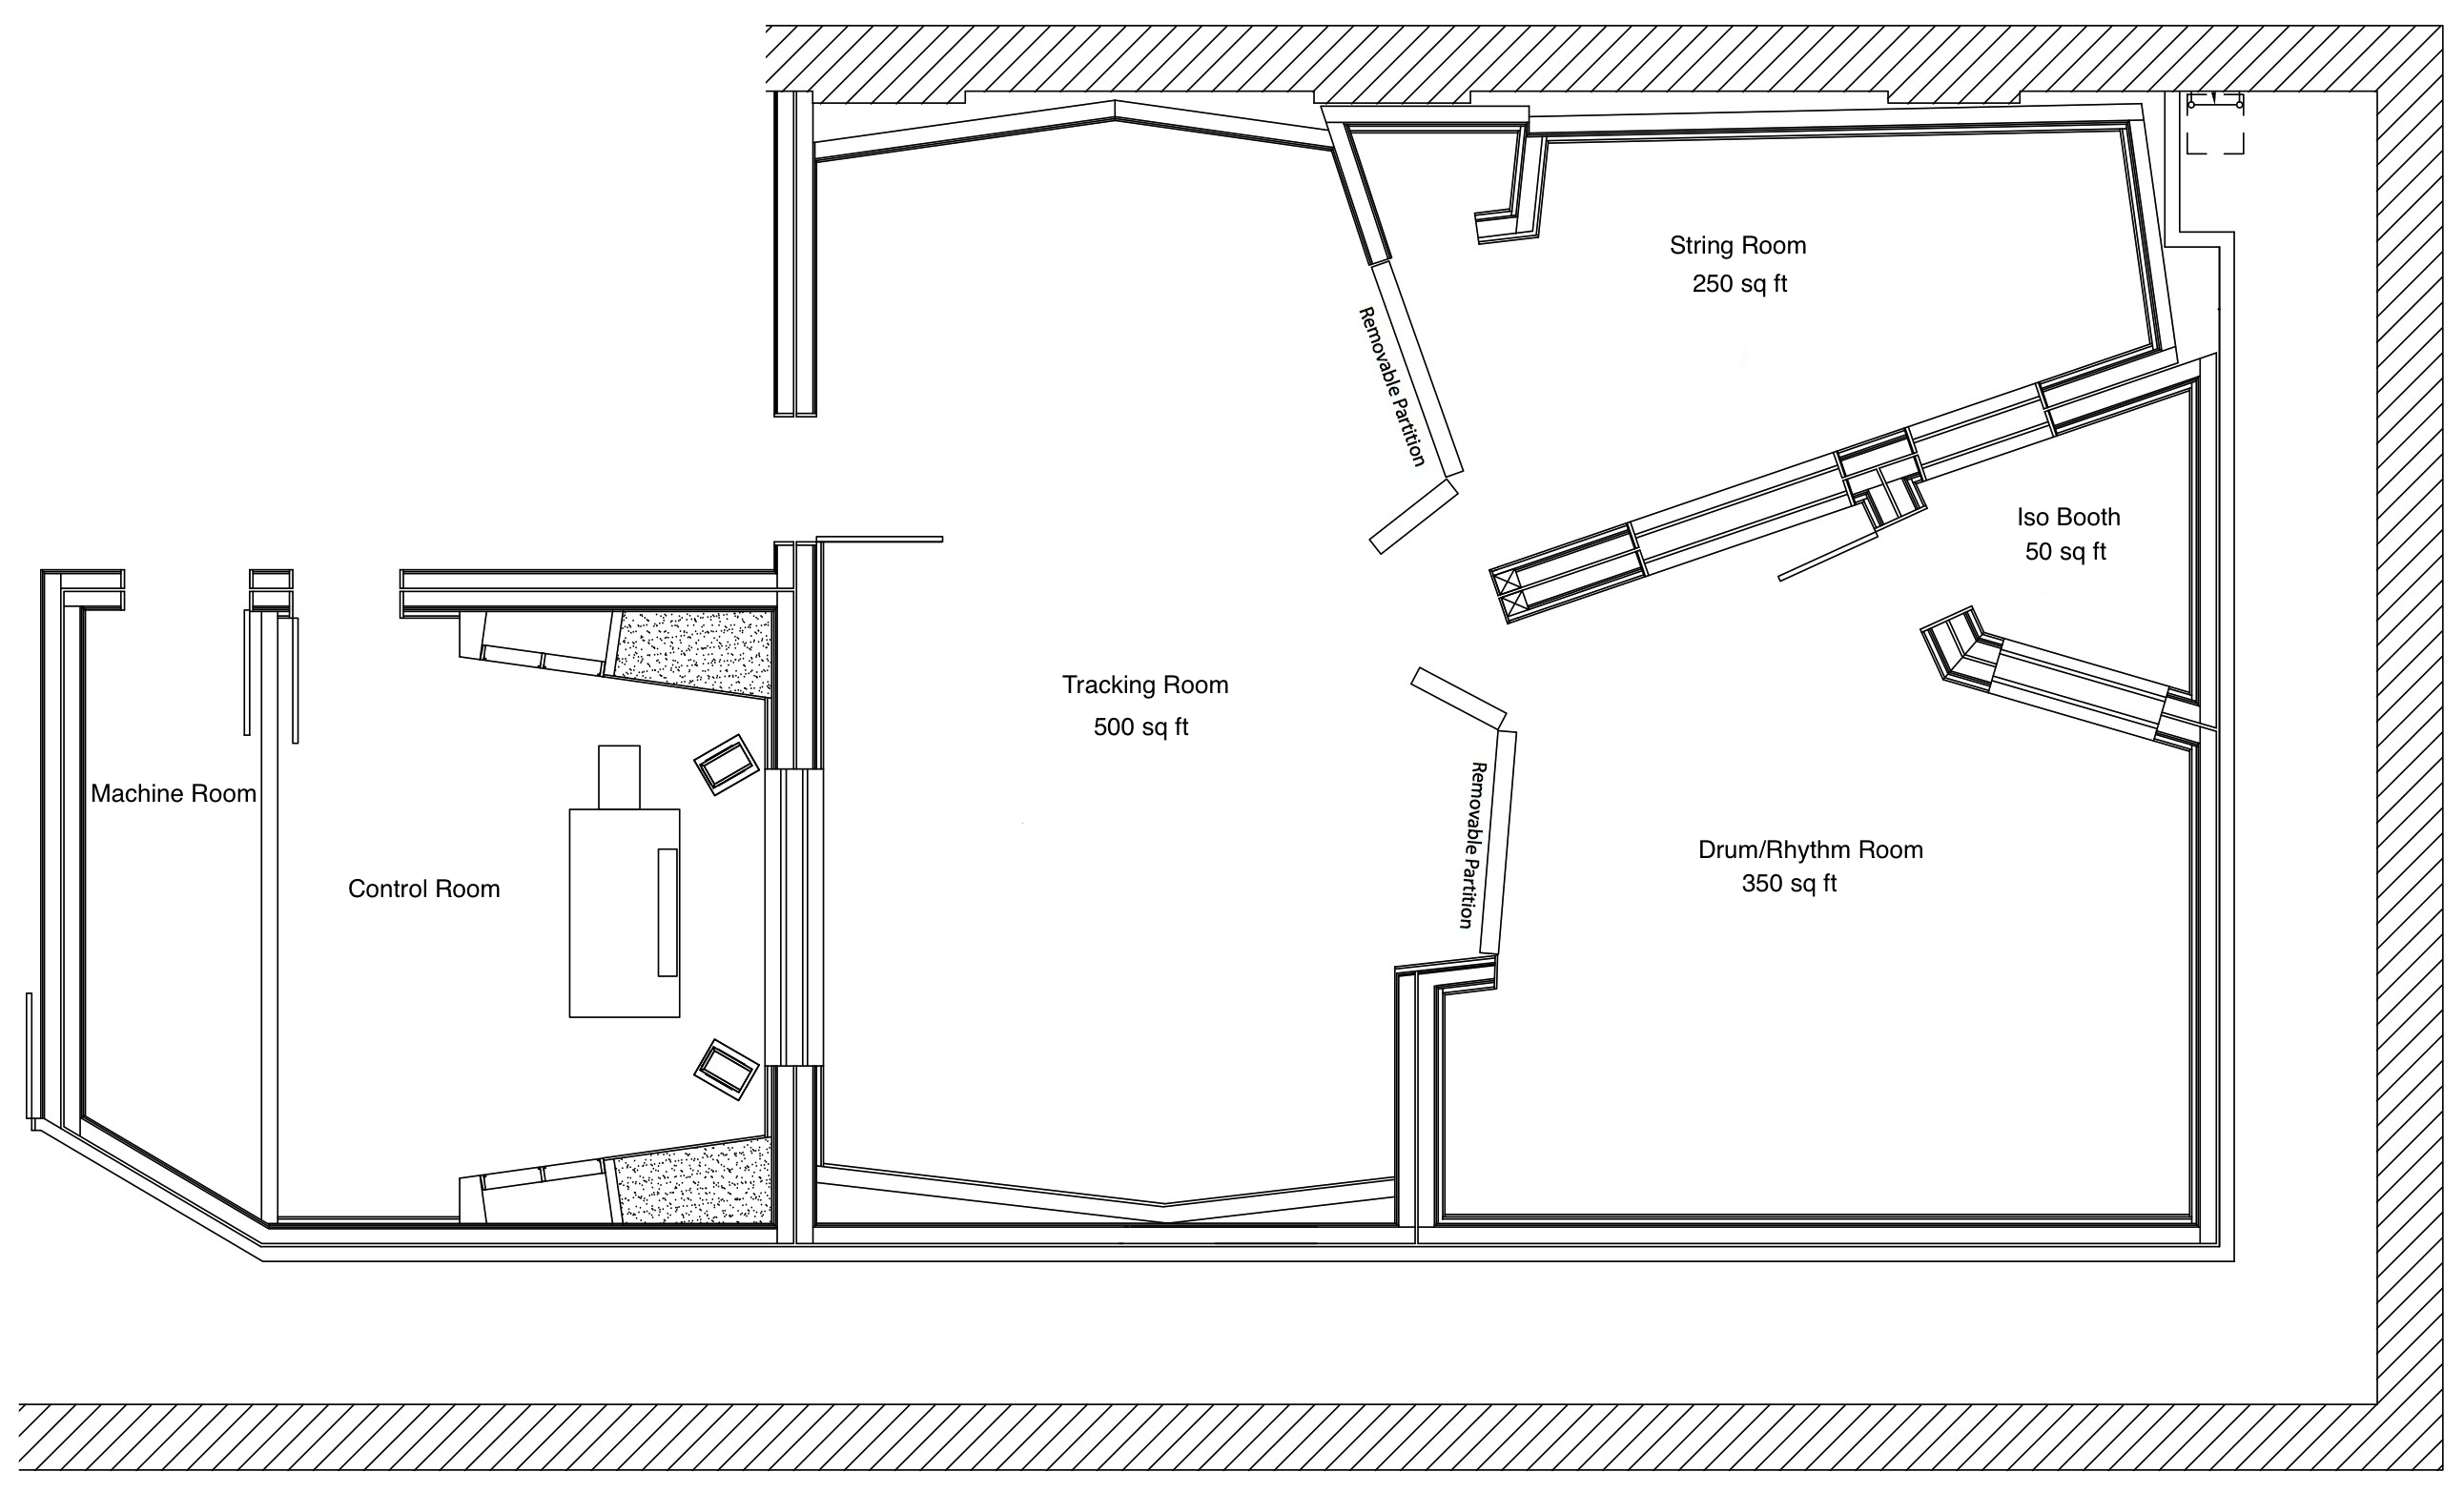 100 500 Sq Ft Studio Floor Plan Availability For